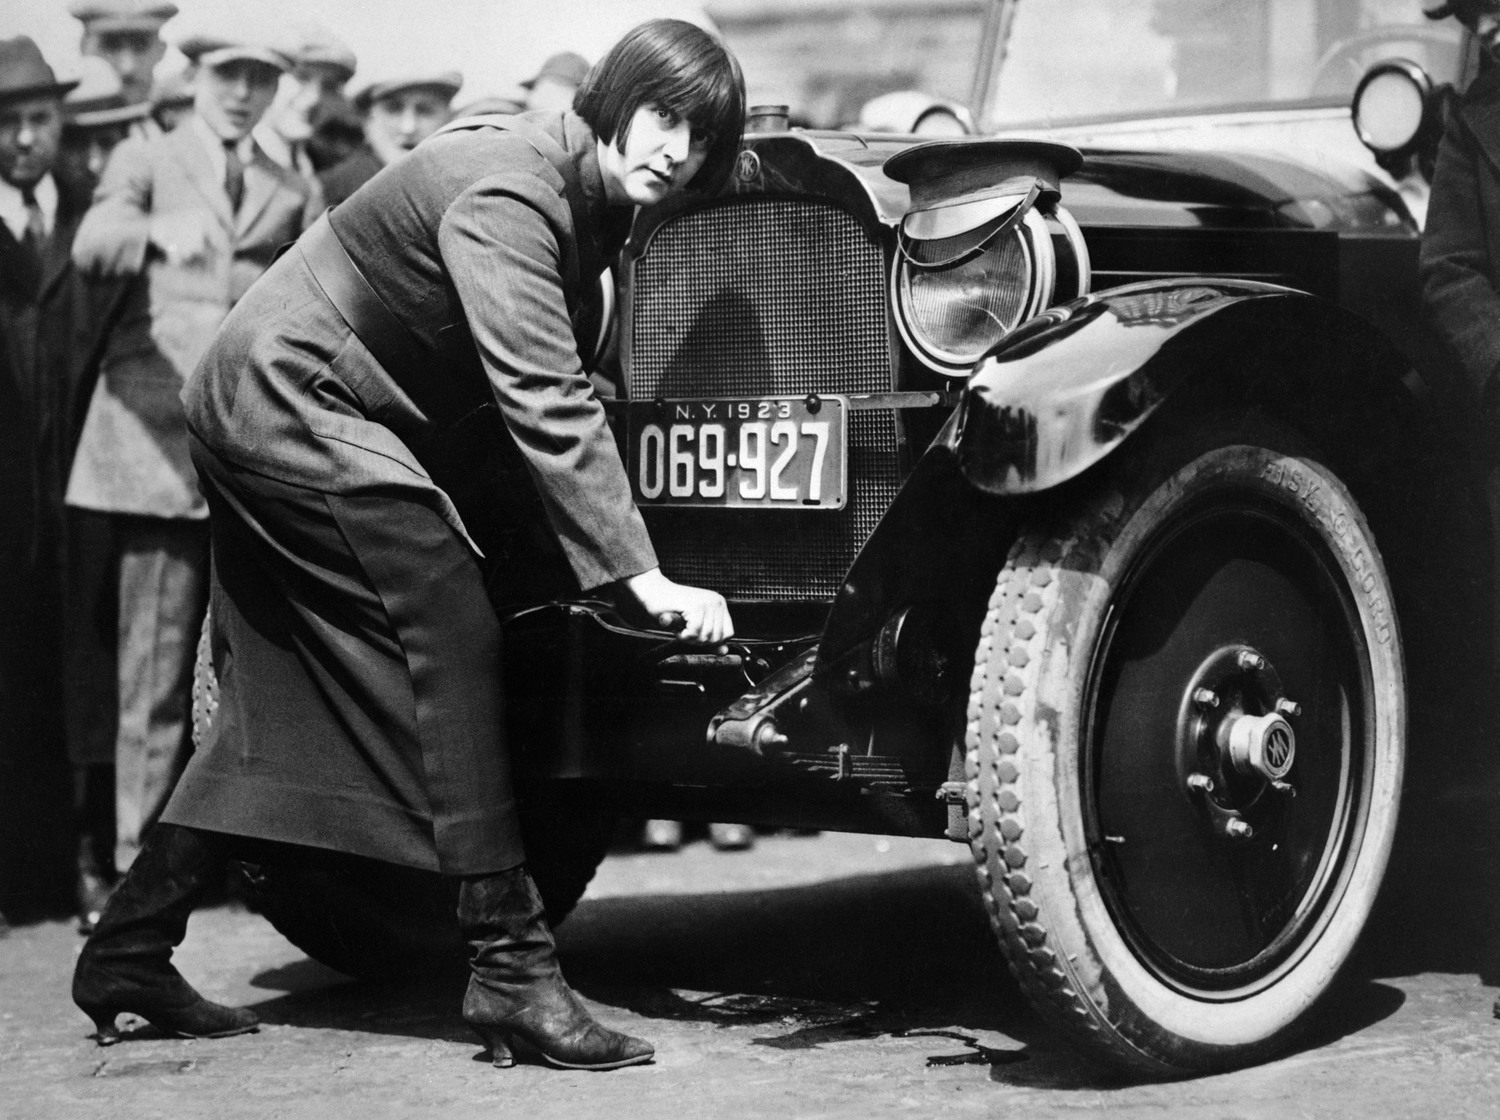 Miss Maude Odell, one of the first women taxi drivers in New York. She is cranking car (Hub Taxicab Corporation), 1923.